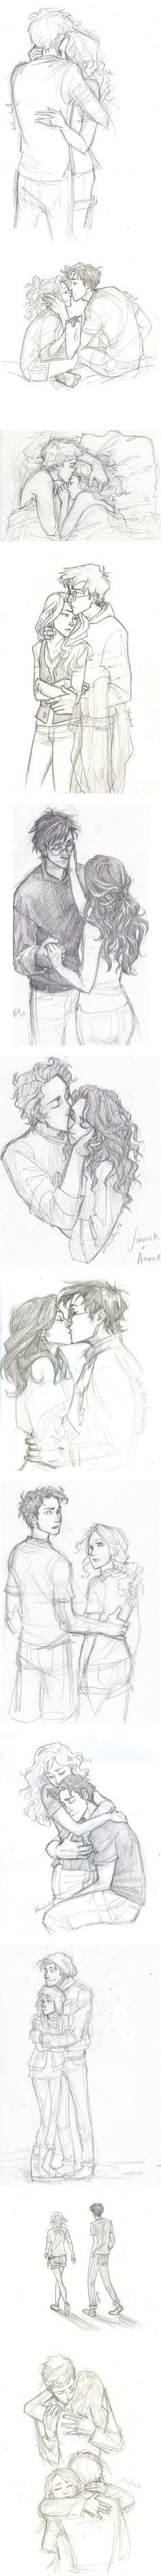 Drawings by Burdge. I like this burdge person. Couple Sketch, Couple Drawings, Drawings Of Couples, Couple Poses Drawing, Couple Poses Reference, Girl Sketch, Drawing Sketches, Art Drawings, Pencil Drawings